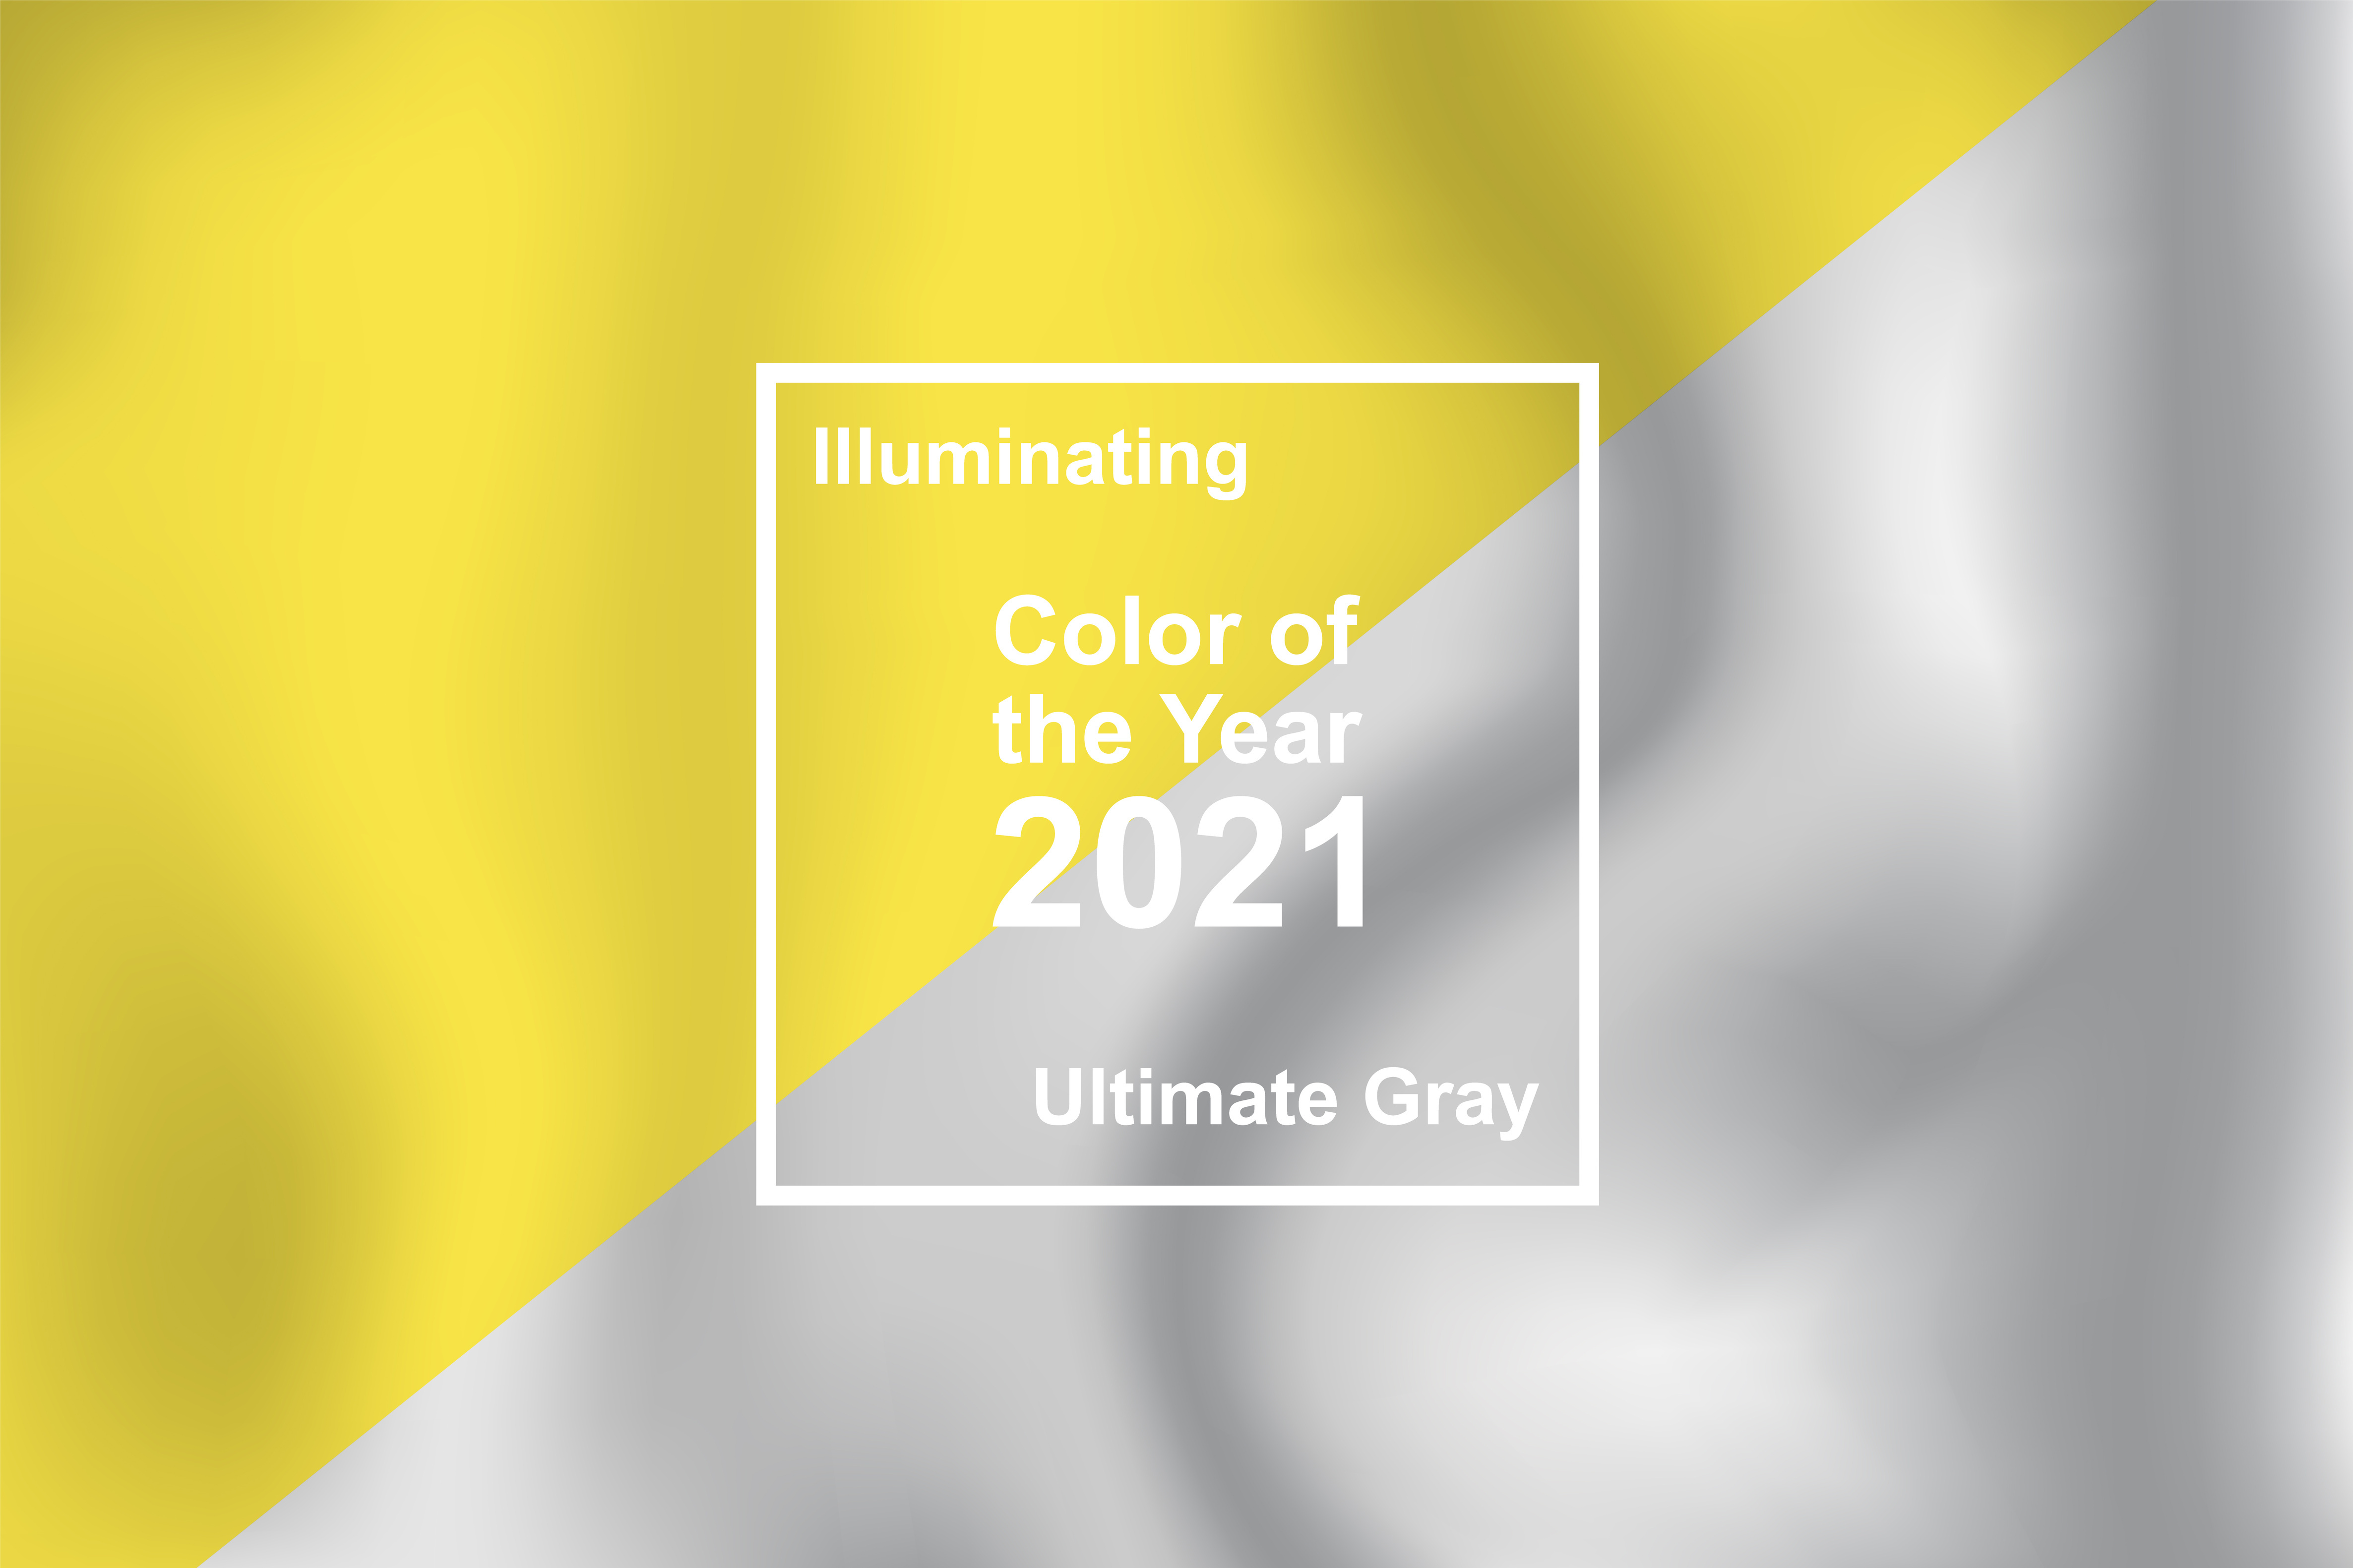 Ultimate Gray and Illuminating, color of the year 2021